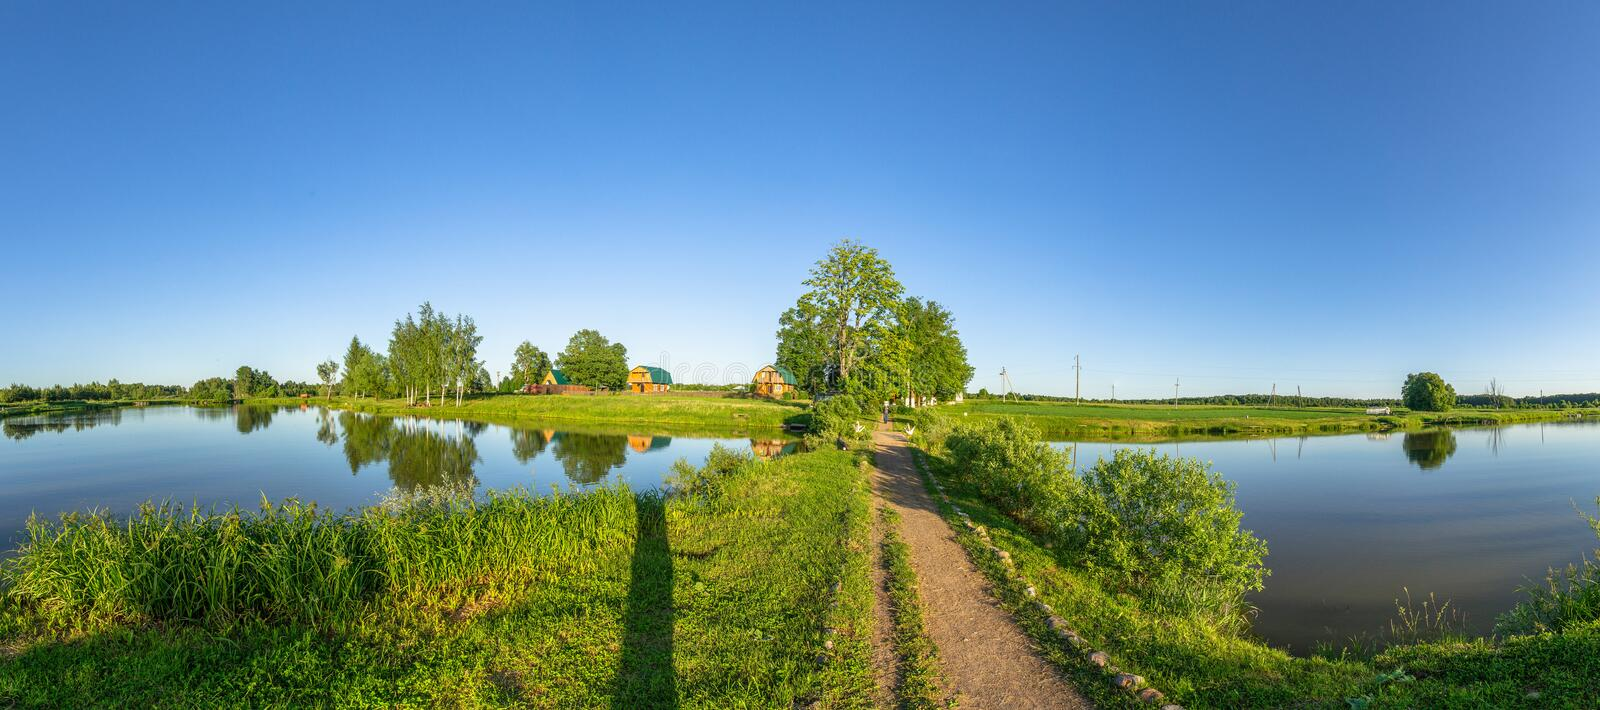 Landscape with a pond at sunset in Central Russia. The landscape at sunset is rich in colors. Illuminated by Golden sunlight, fields, meadows, trees, hills and stock photos